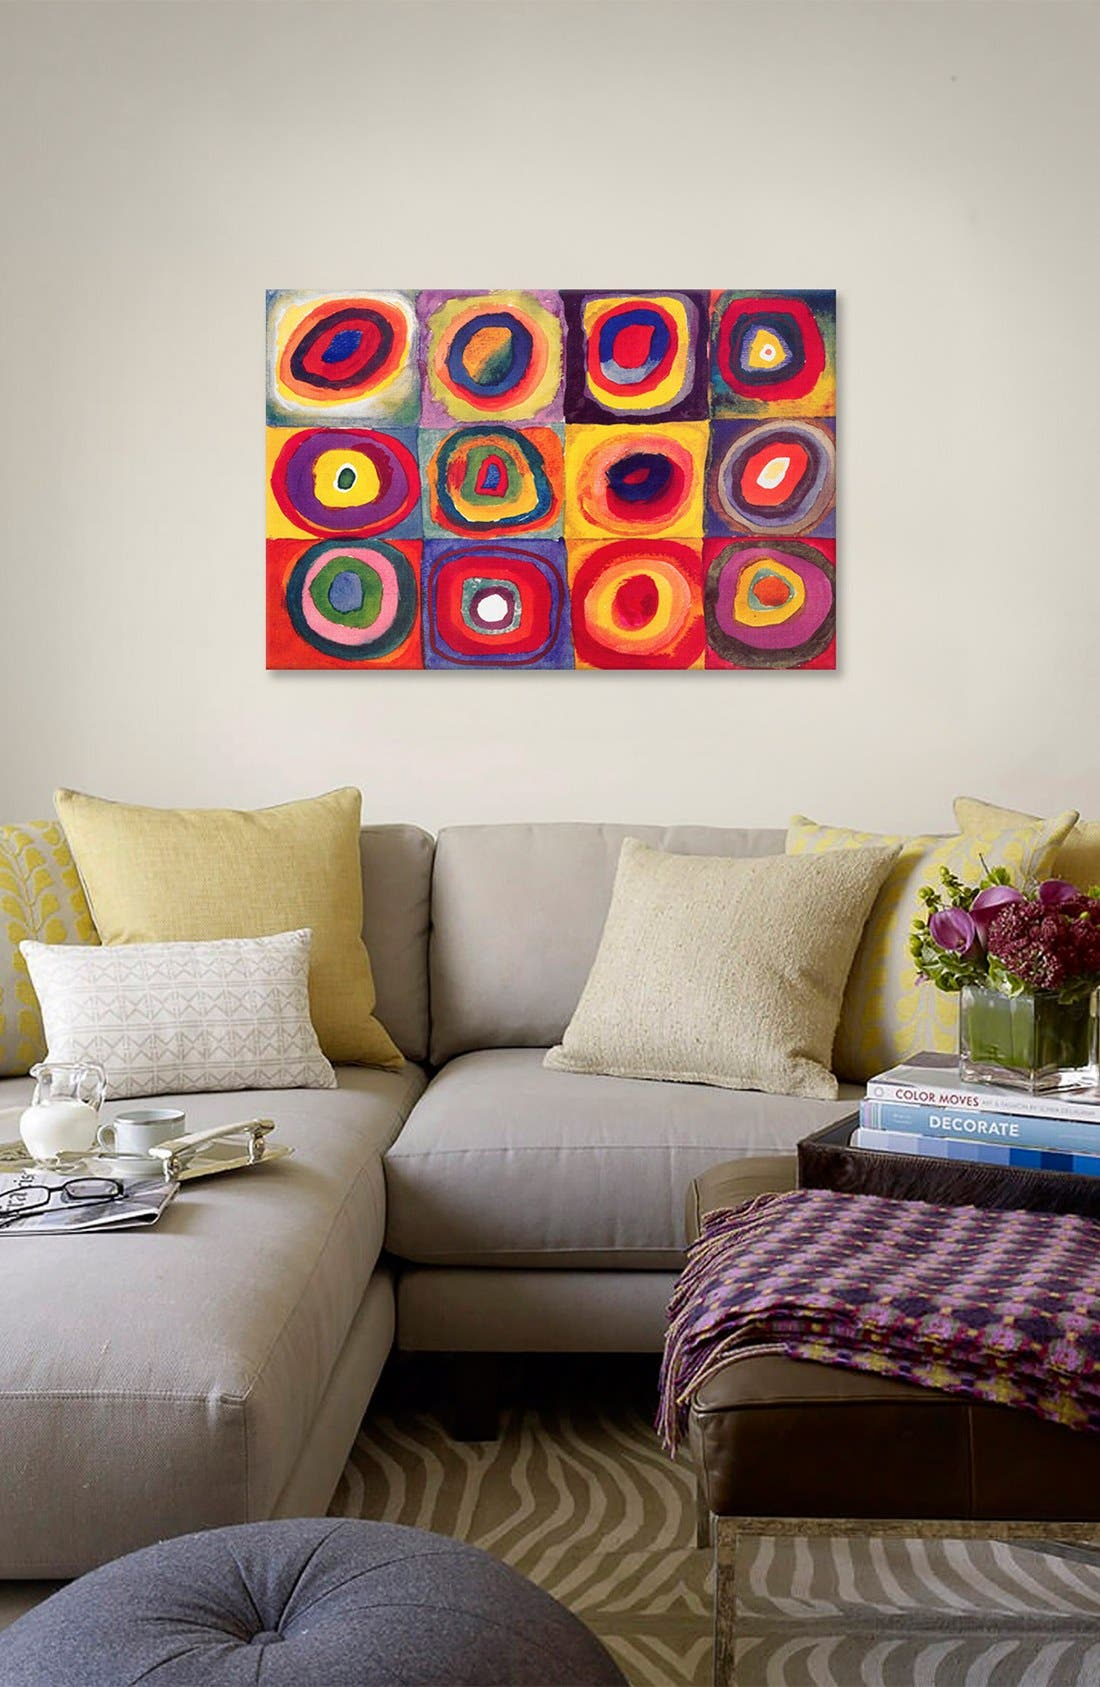 'Squares With Concentric Circles - Wassily Kandinsky' Giclée Print Canvas Art,                             Alternate thumbnail 2, color,                             600